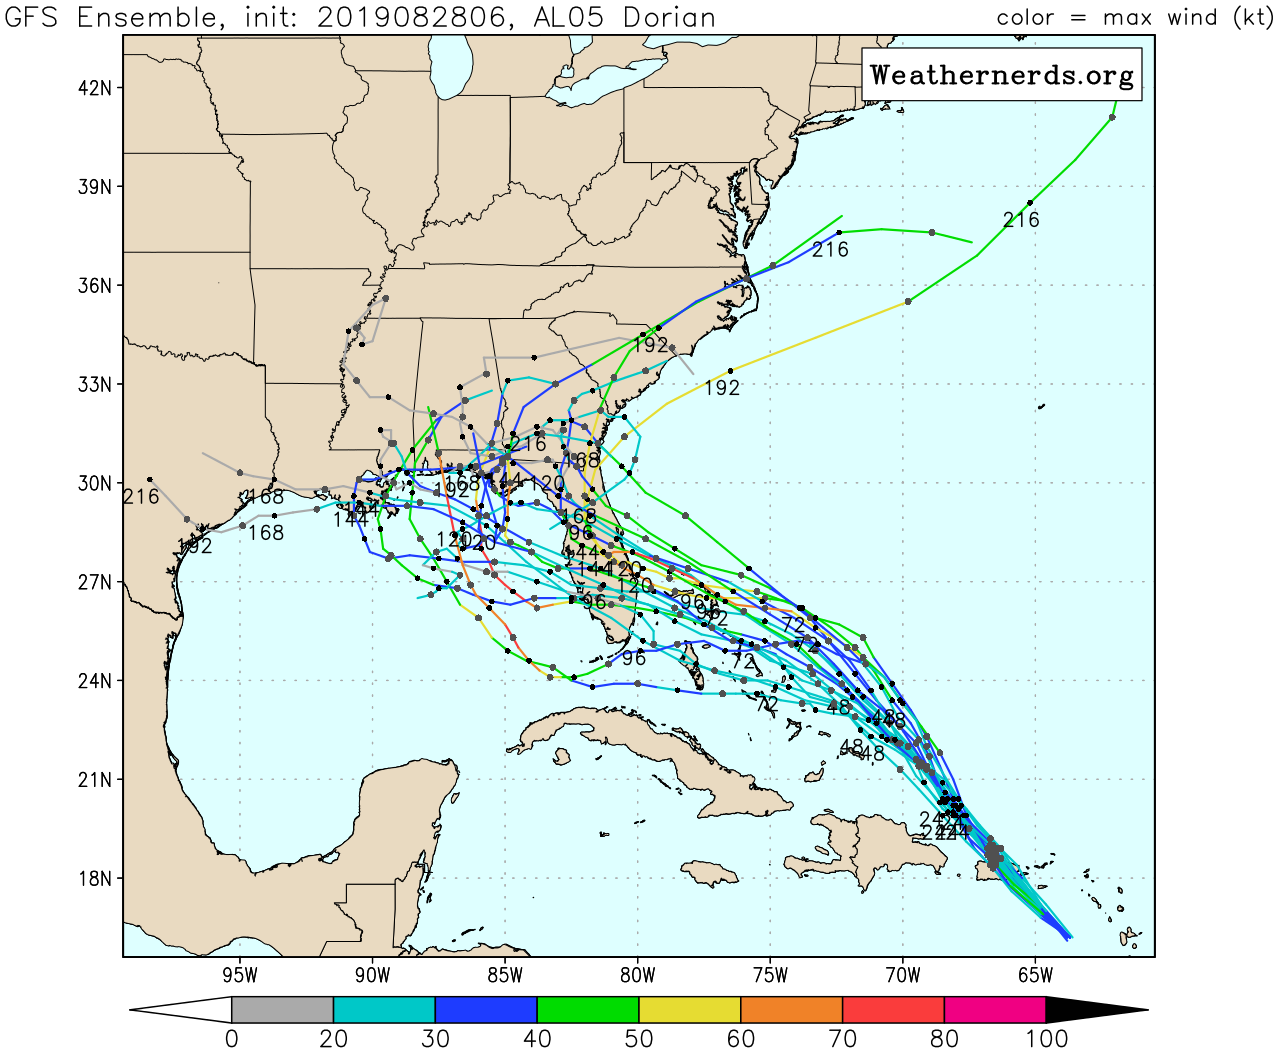 The GFS forecast model ensemble predictions for Dorian show a range of possibilities for the track into Florida, and beyond.